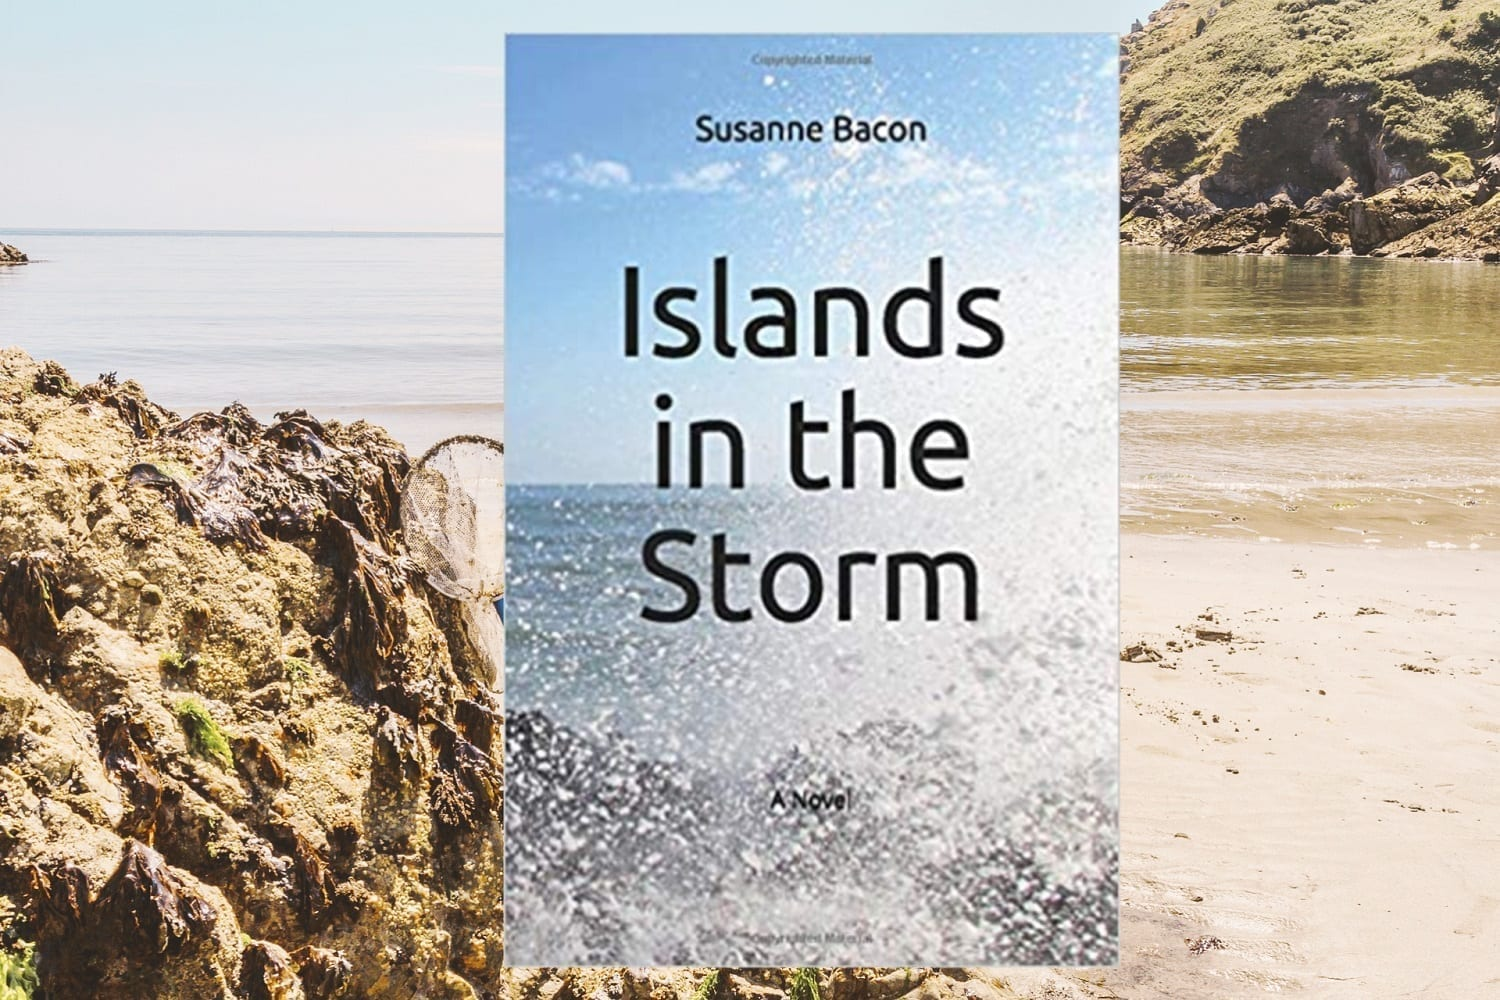 Islands in the Storm by Susanne Bacon